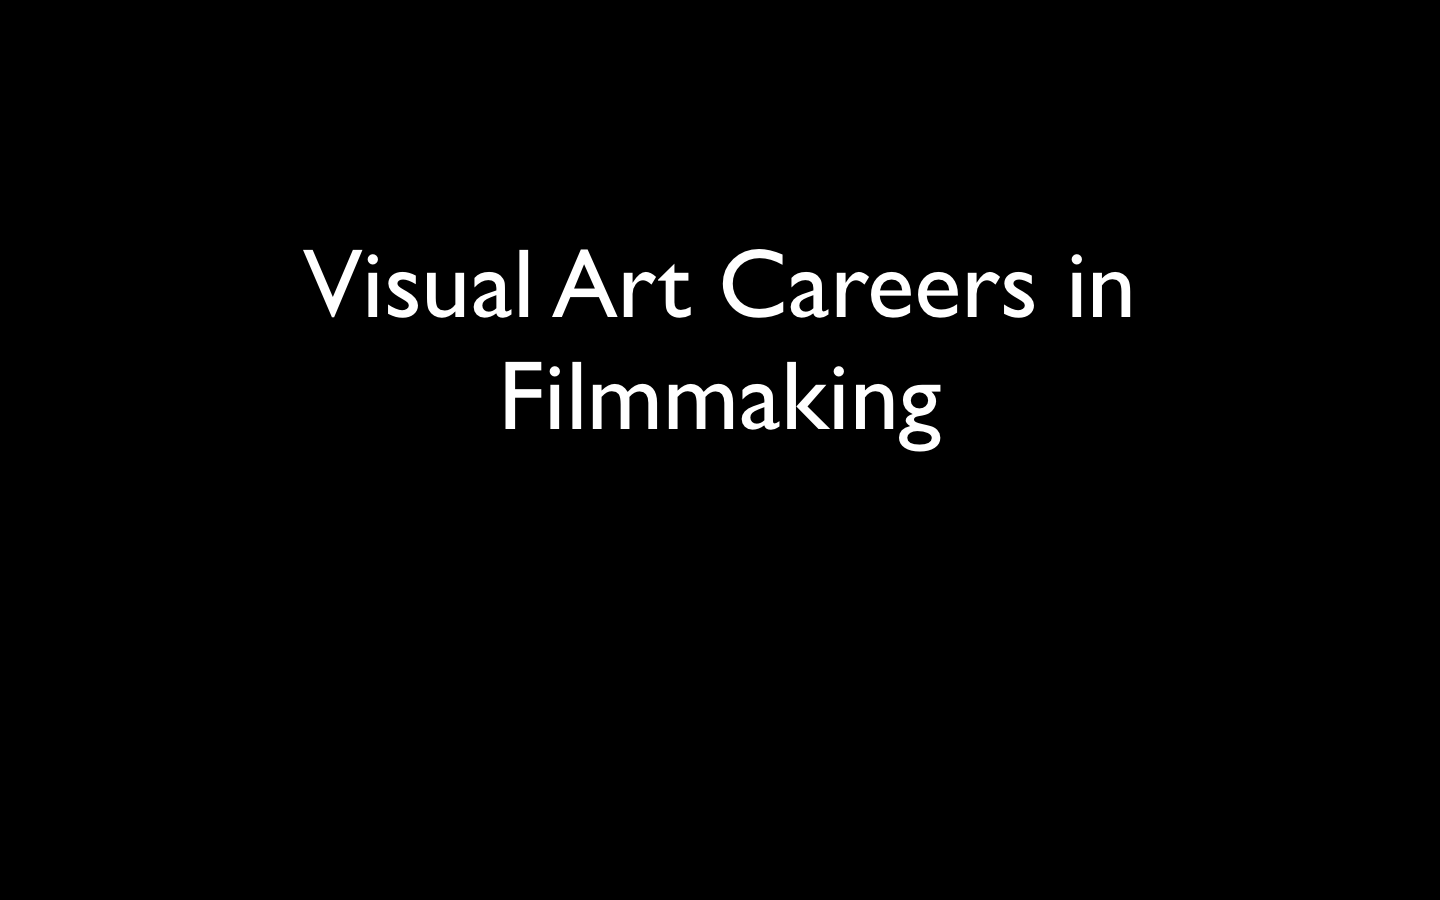 visual art careers in filmmaking mms visual arts visual art careers in filmmaking